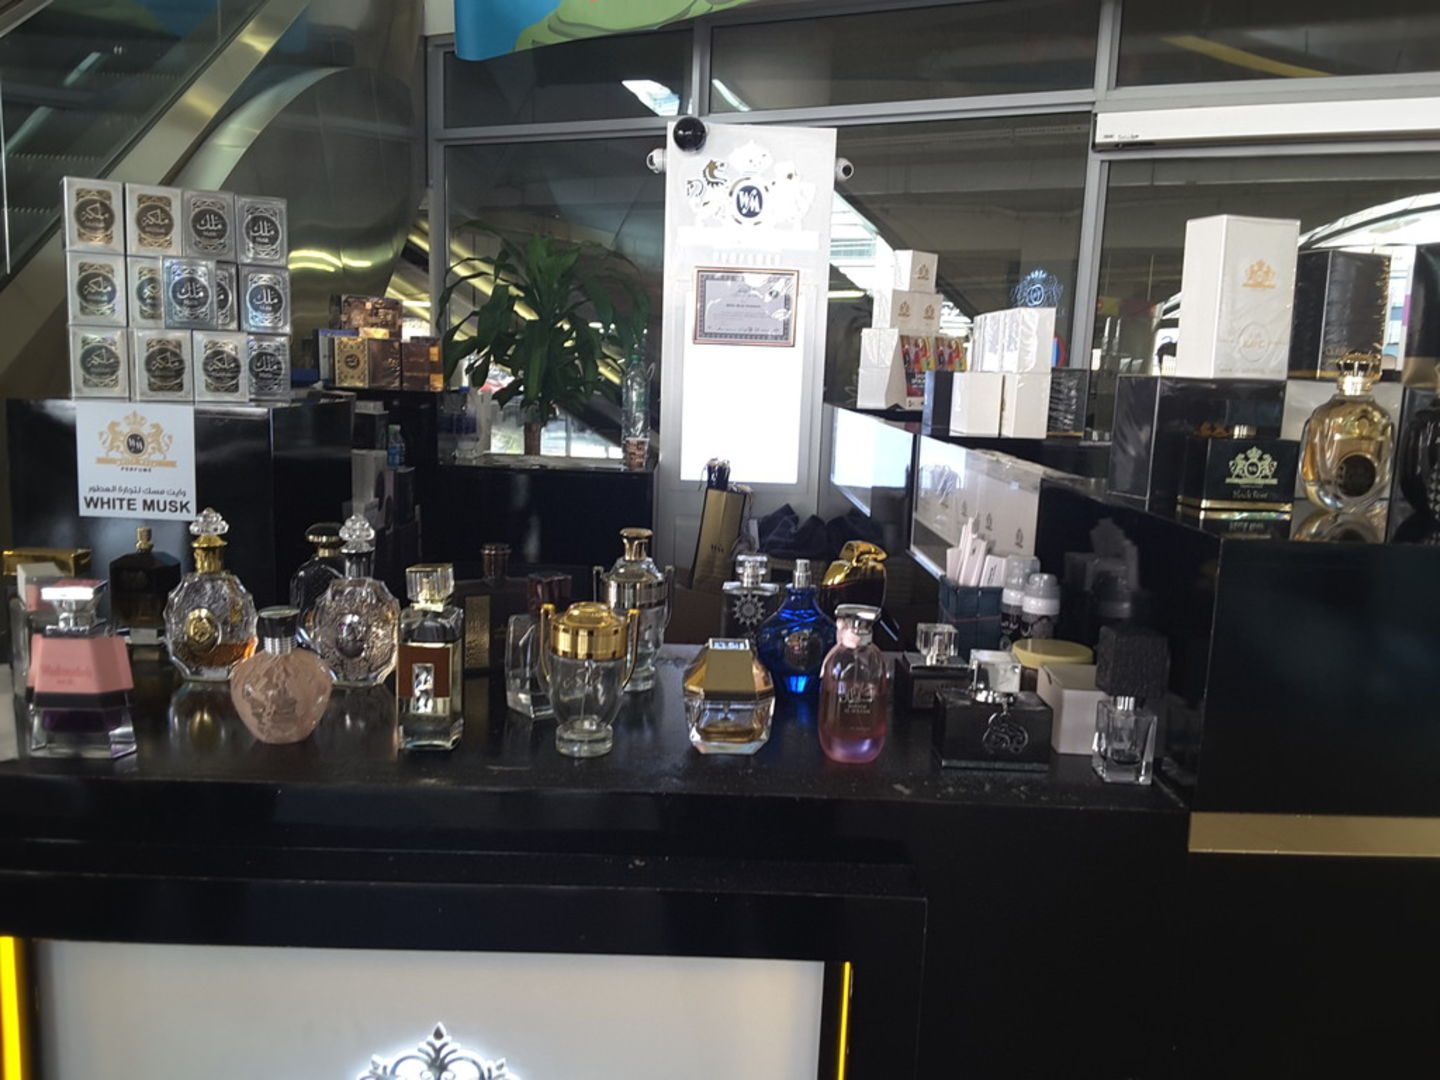 HiDubai-business-white-musk-perfumes-trading-shopping-beauty-cosmetics-stores-al-muraqqabat-dubai